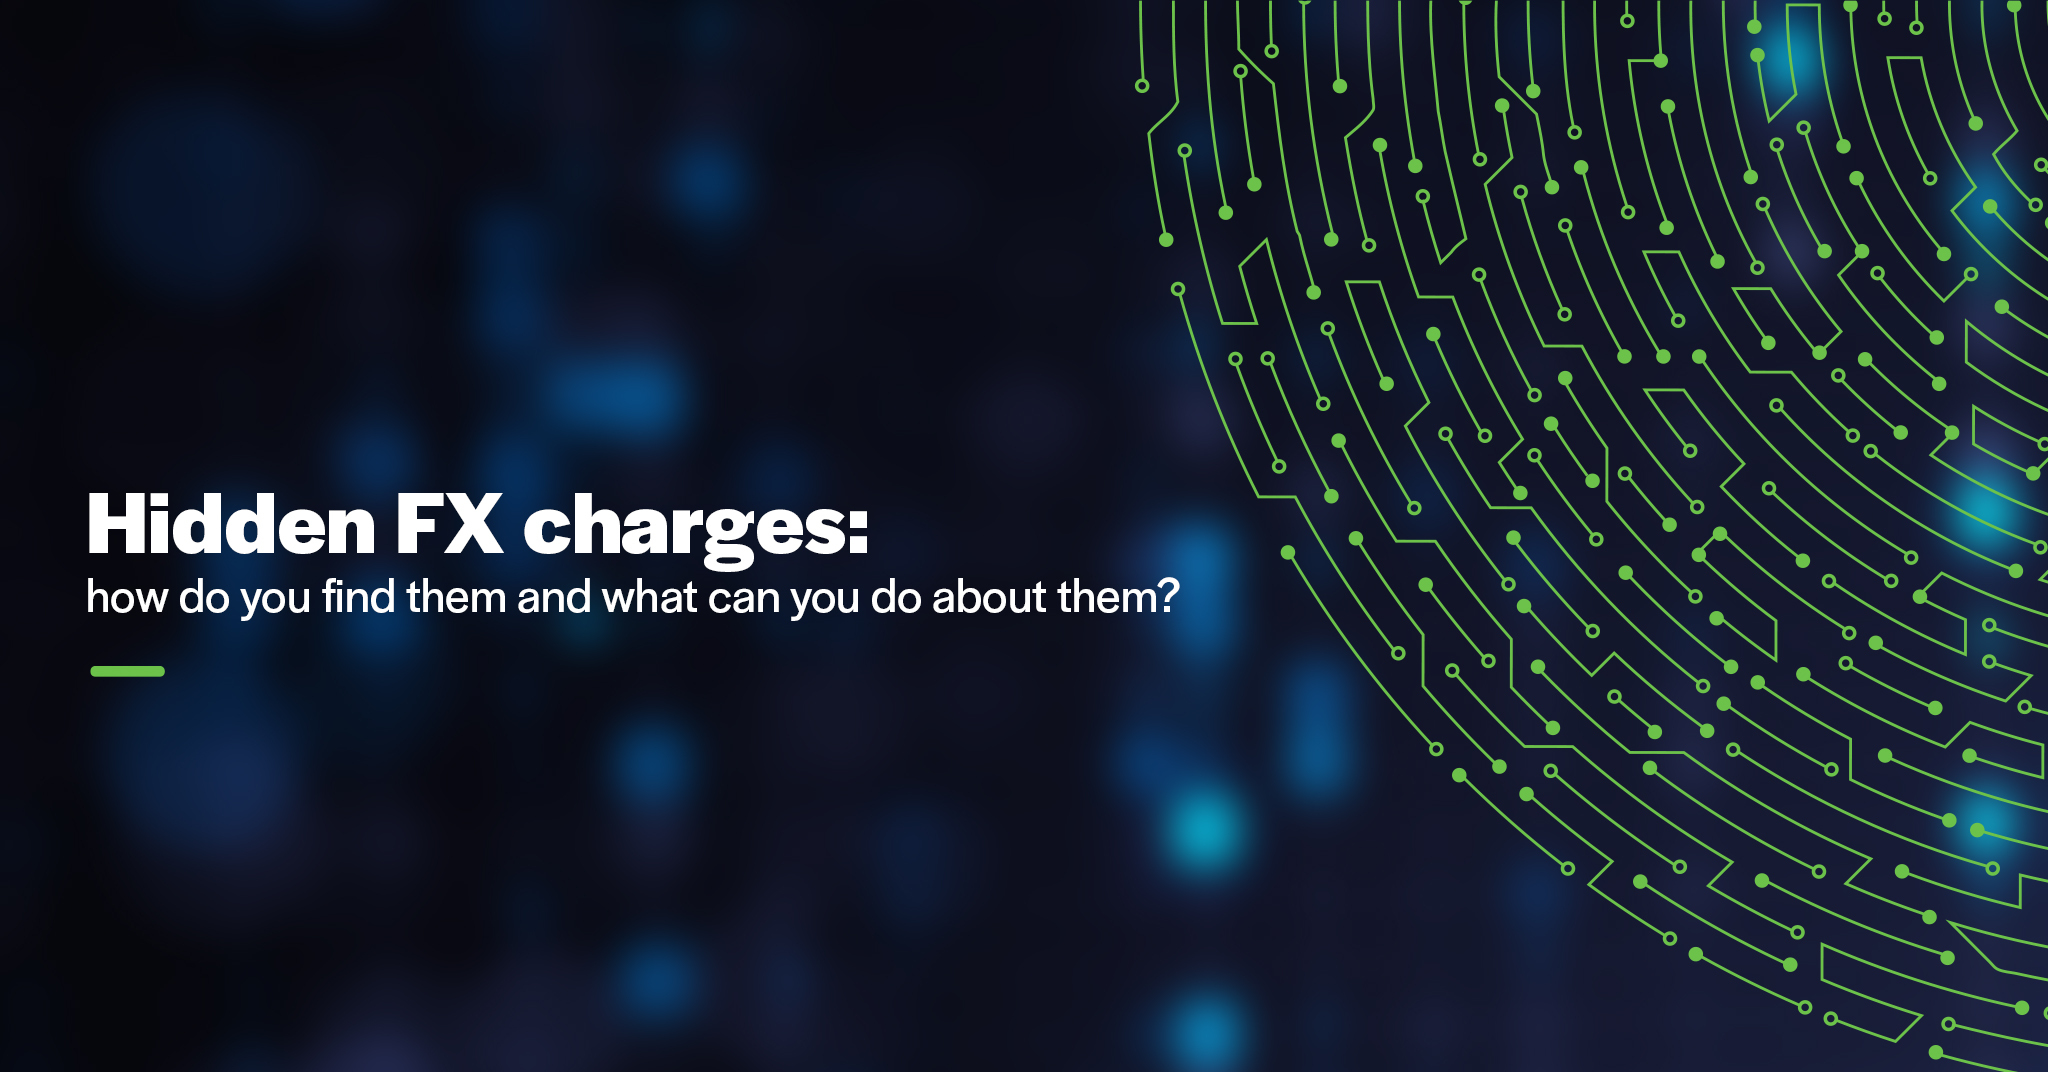 Hidden FX charges: how do you find them and what can you do about them?